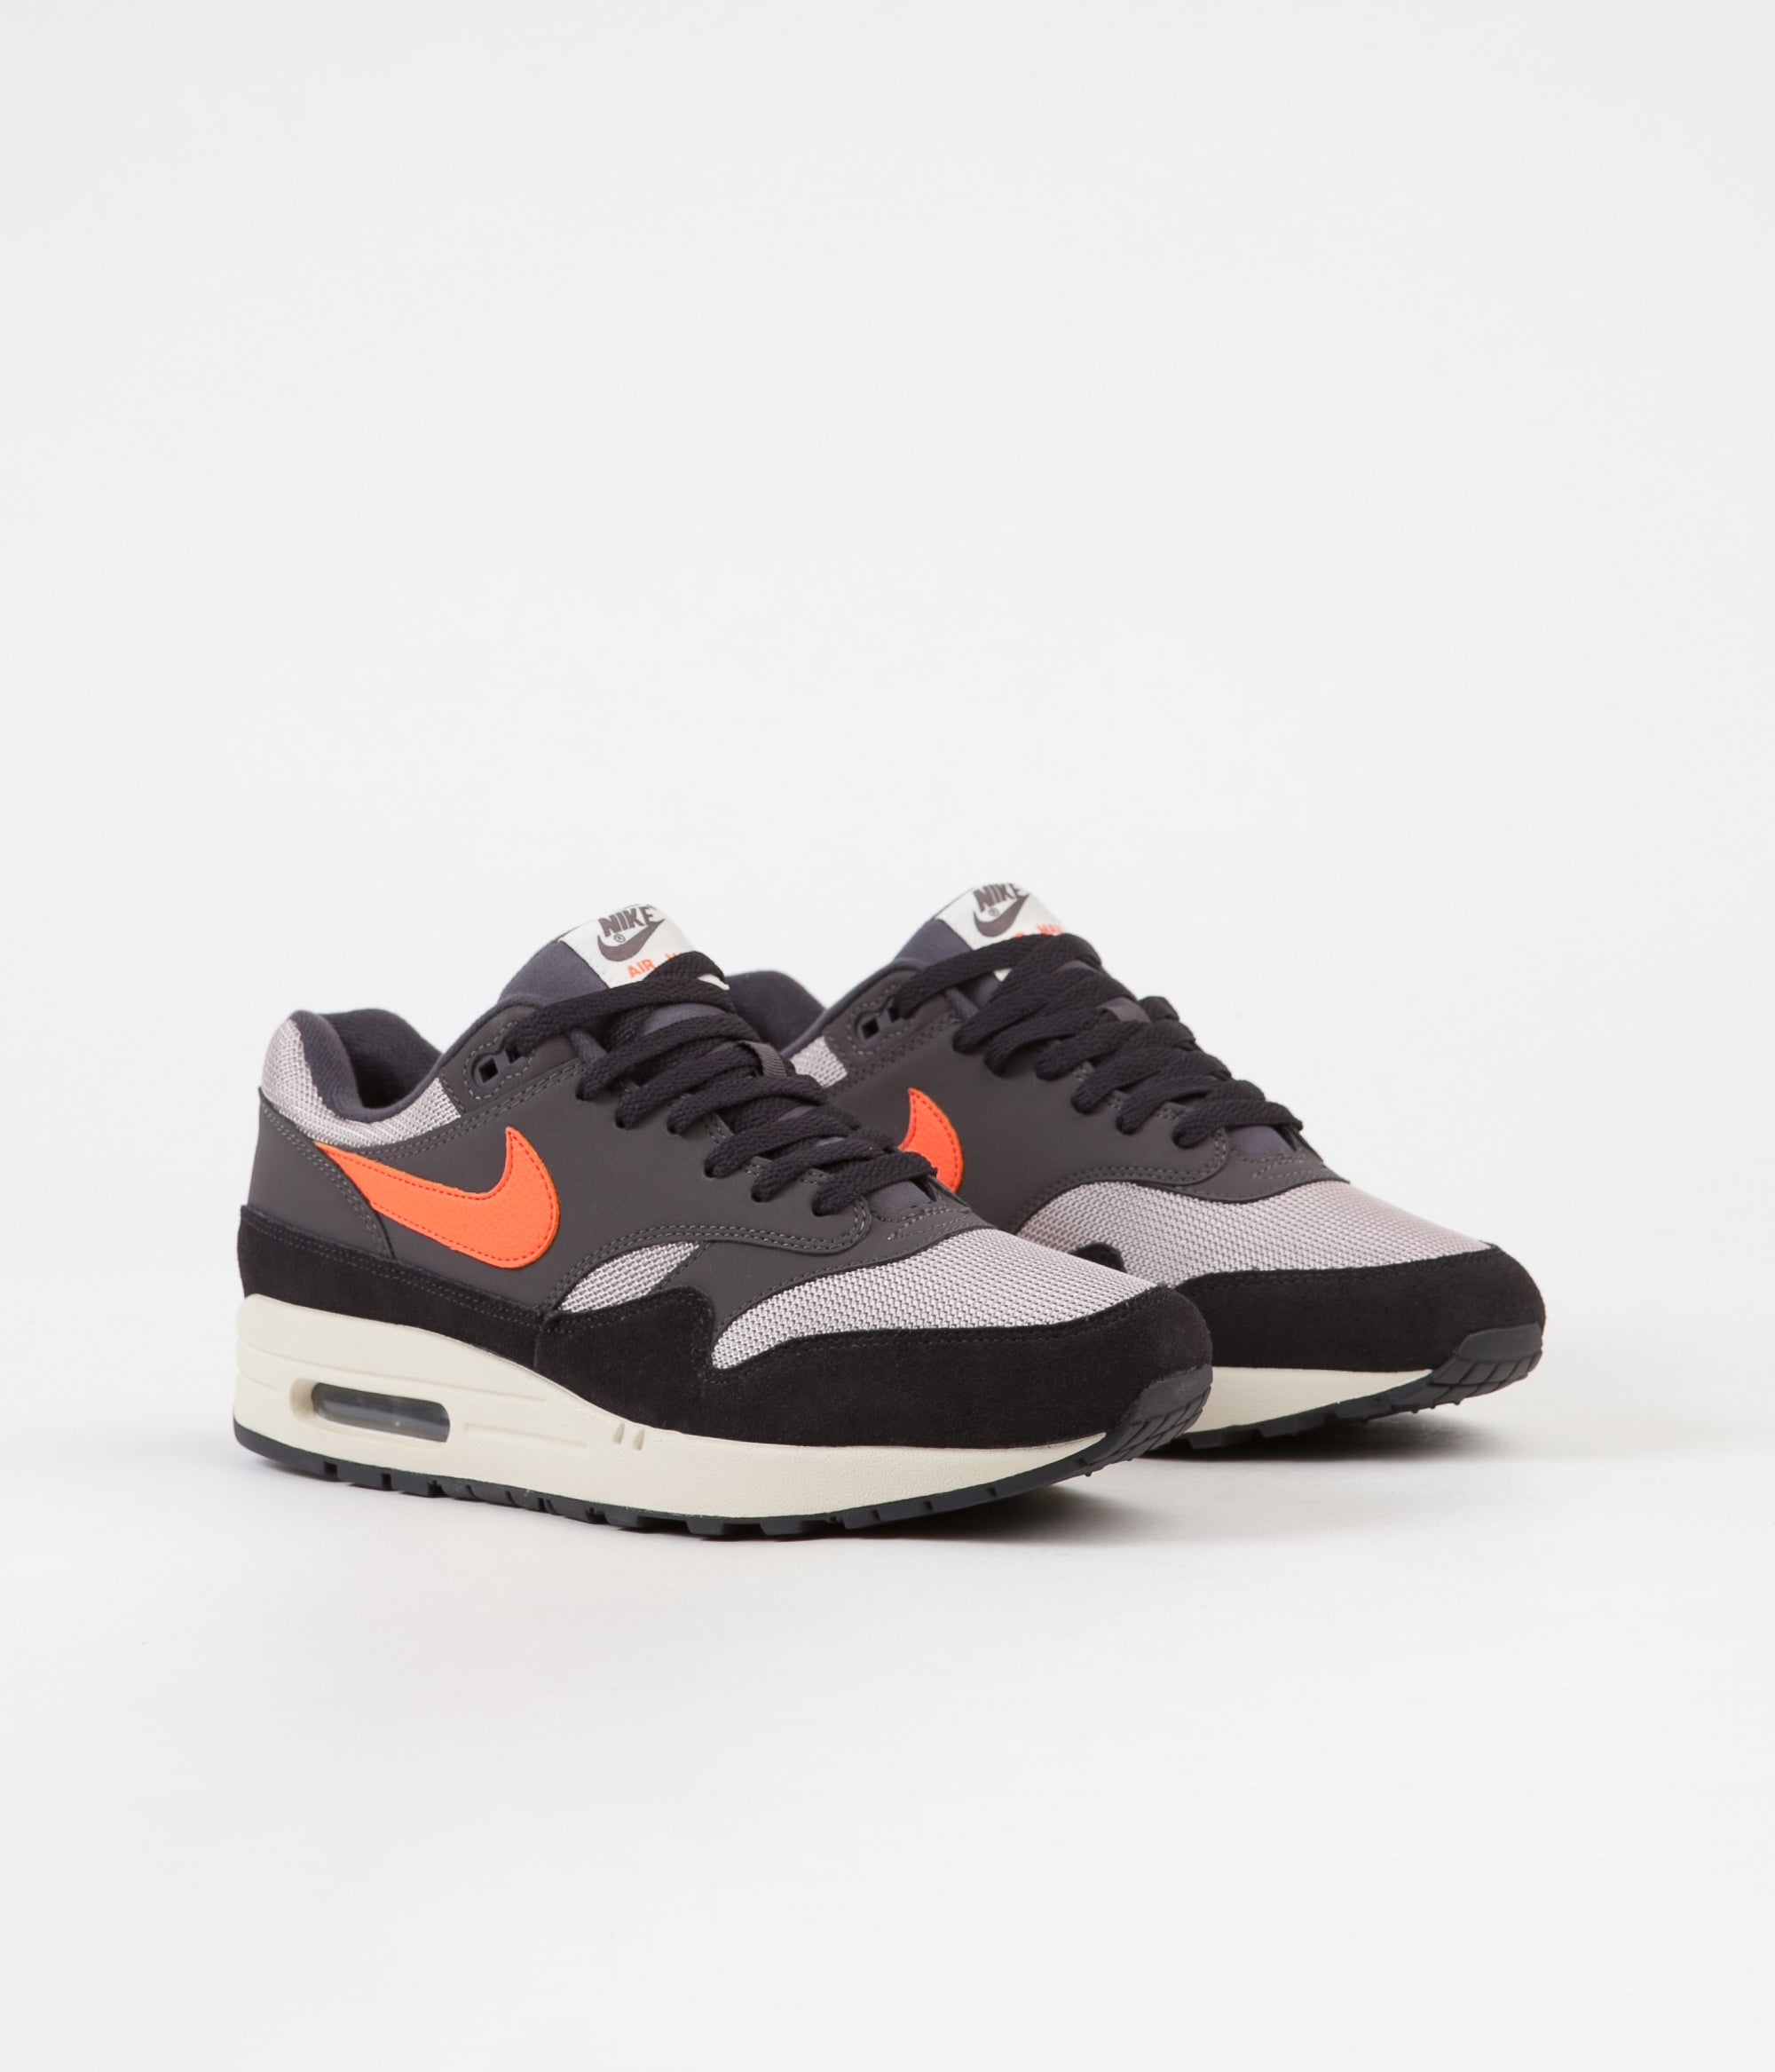 e8b2ce4340 Nike Air Max 1 Shoes - Oil Grey / Wild Mango - Thunder Grey | Always ...